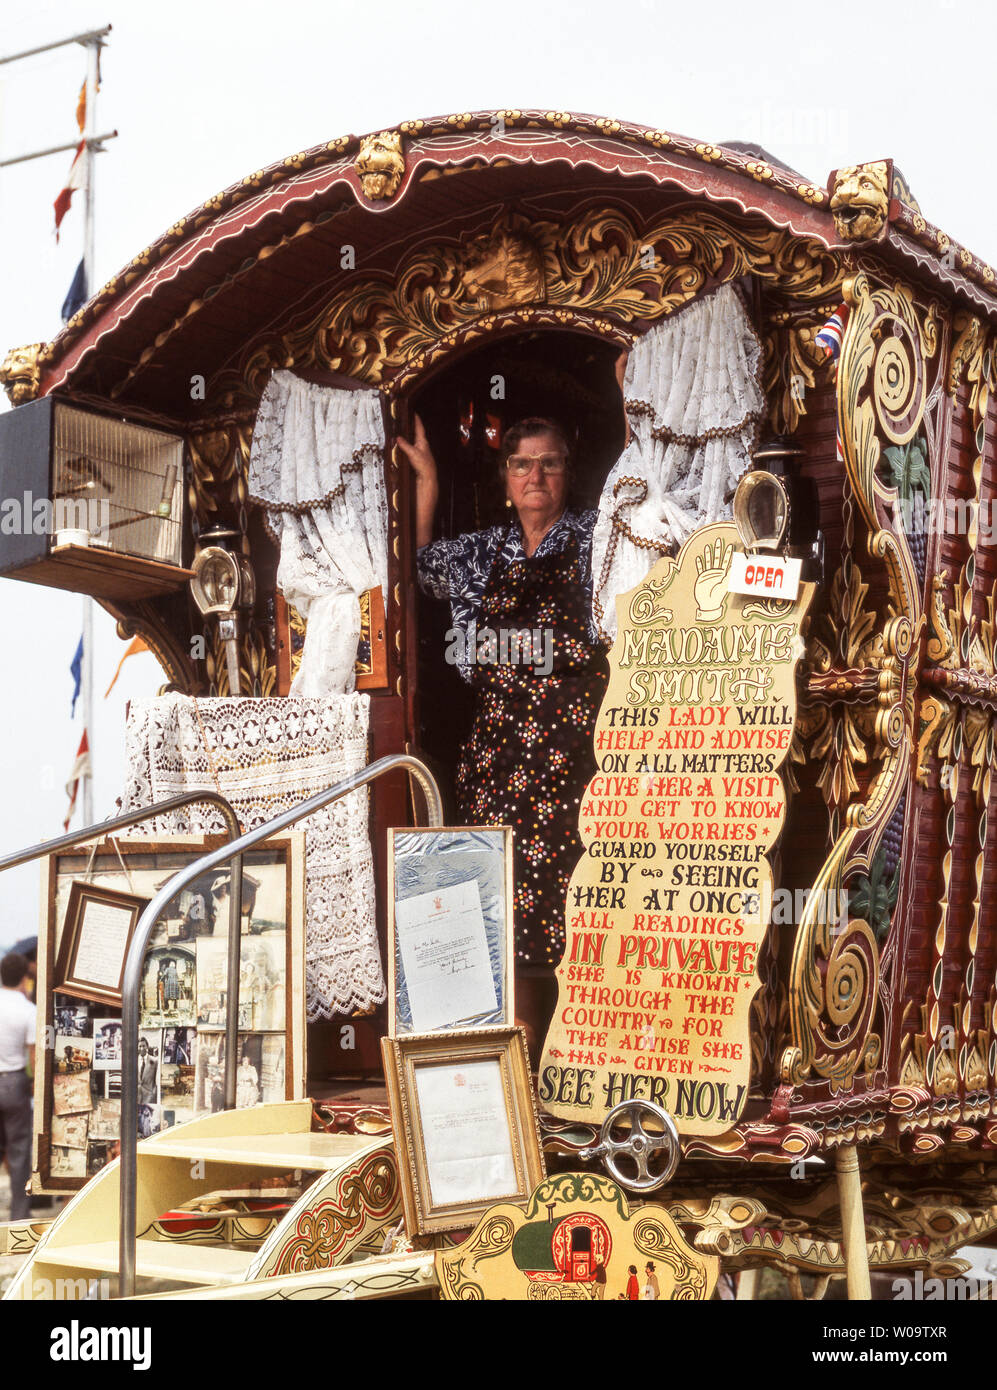 Madame Smith. Clairvoyante. In the doorway of her caravan at the Hoppings Fair.Newcastle upon Tyne in the mid 1980s. England. - Stock Image